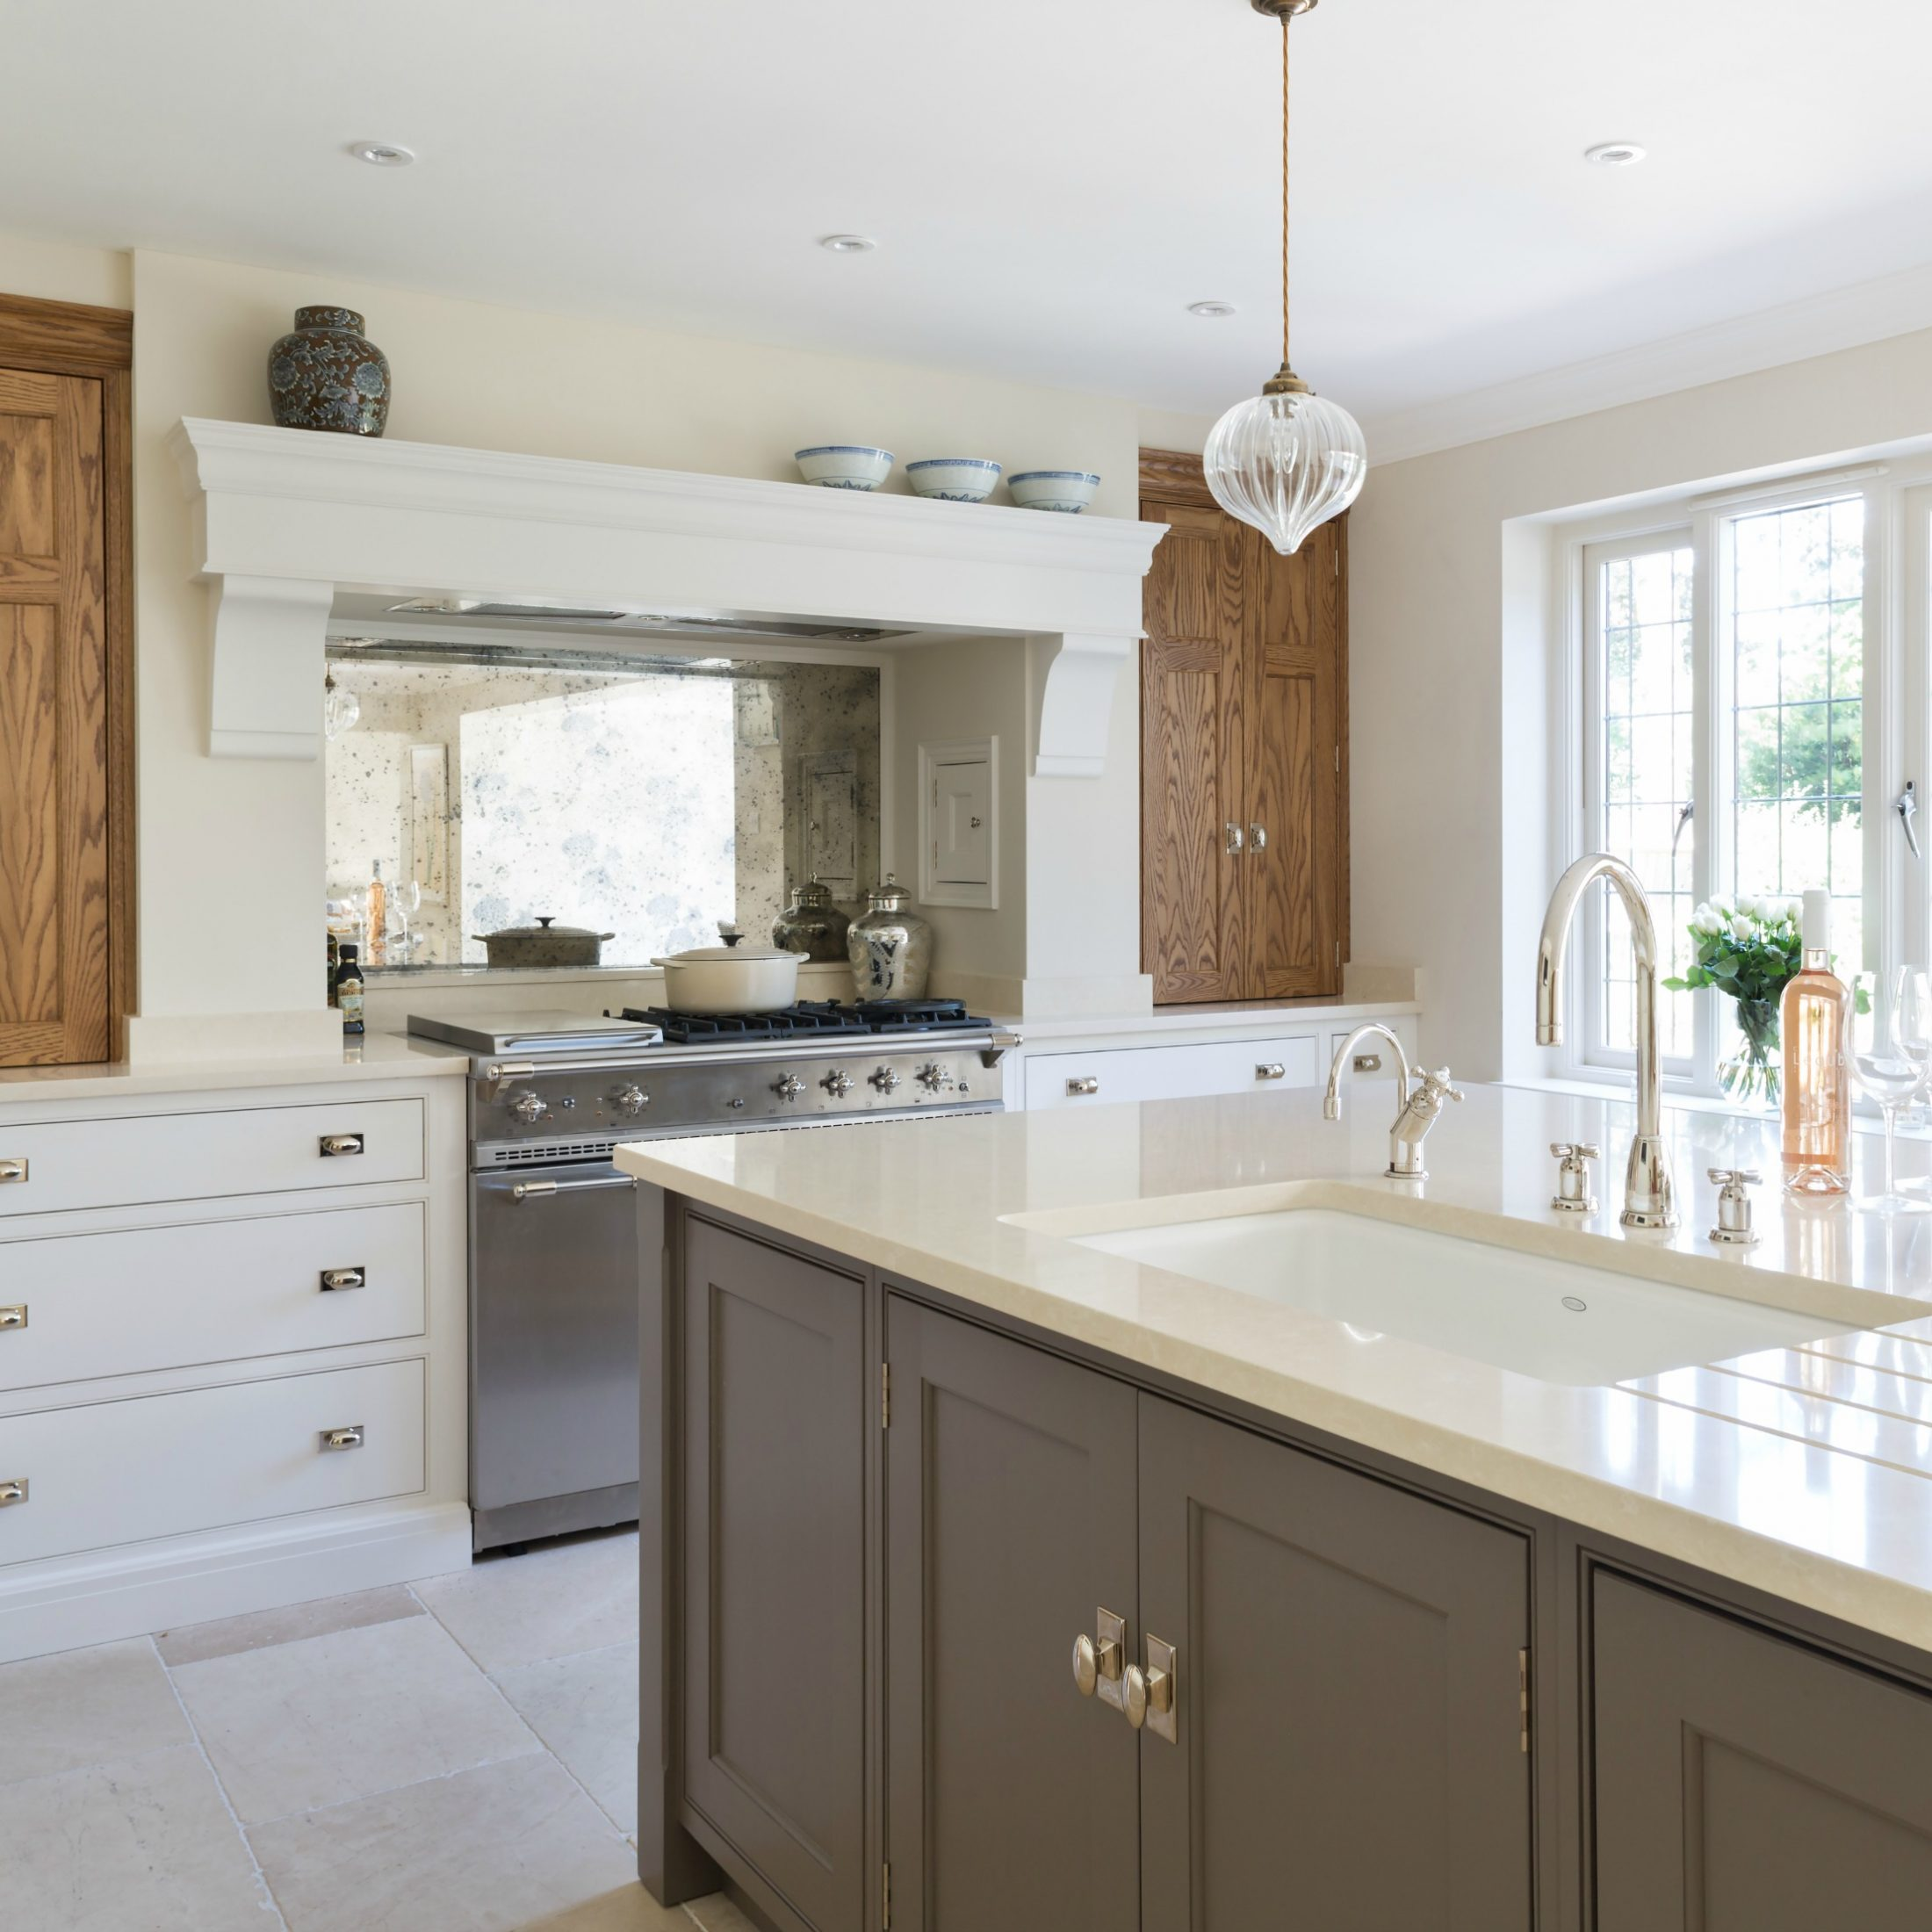 bespoke kitchen island luxury bespoke kitchen hadley wood 10691